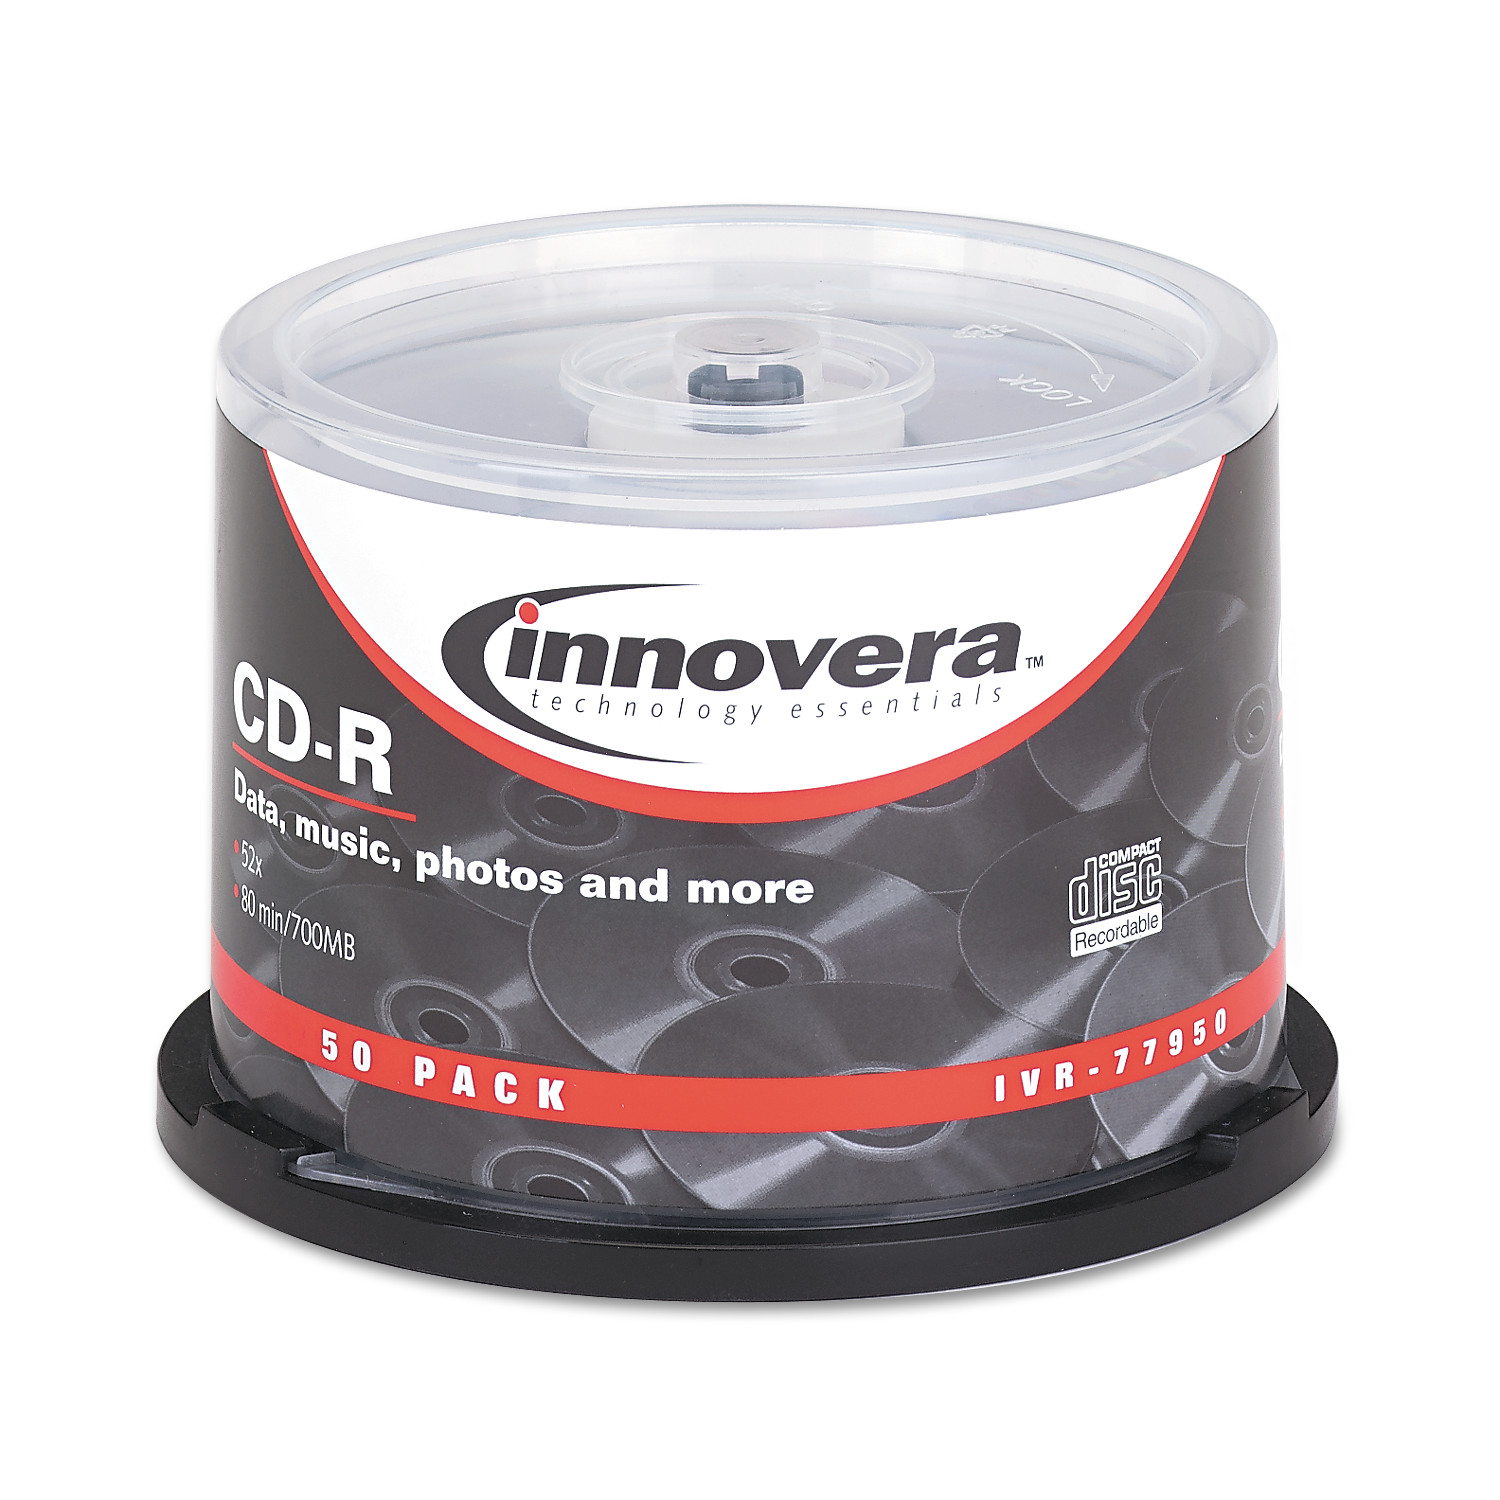 Innovera CD-R Discs, 700MB/80min, 52x, Spindle, Silver, 50/Pack -IVR77950